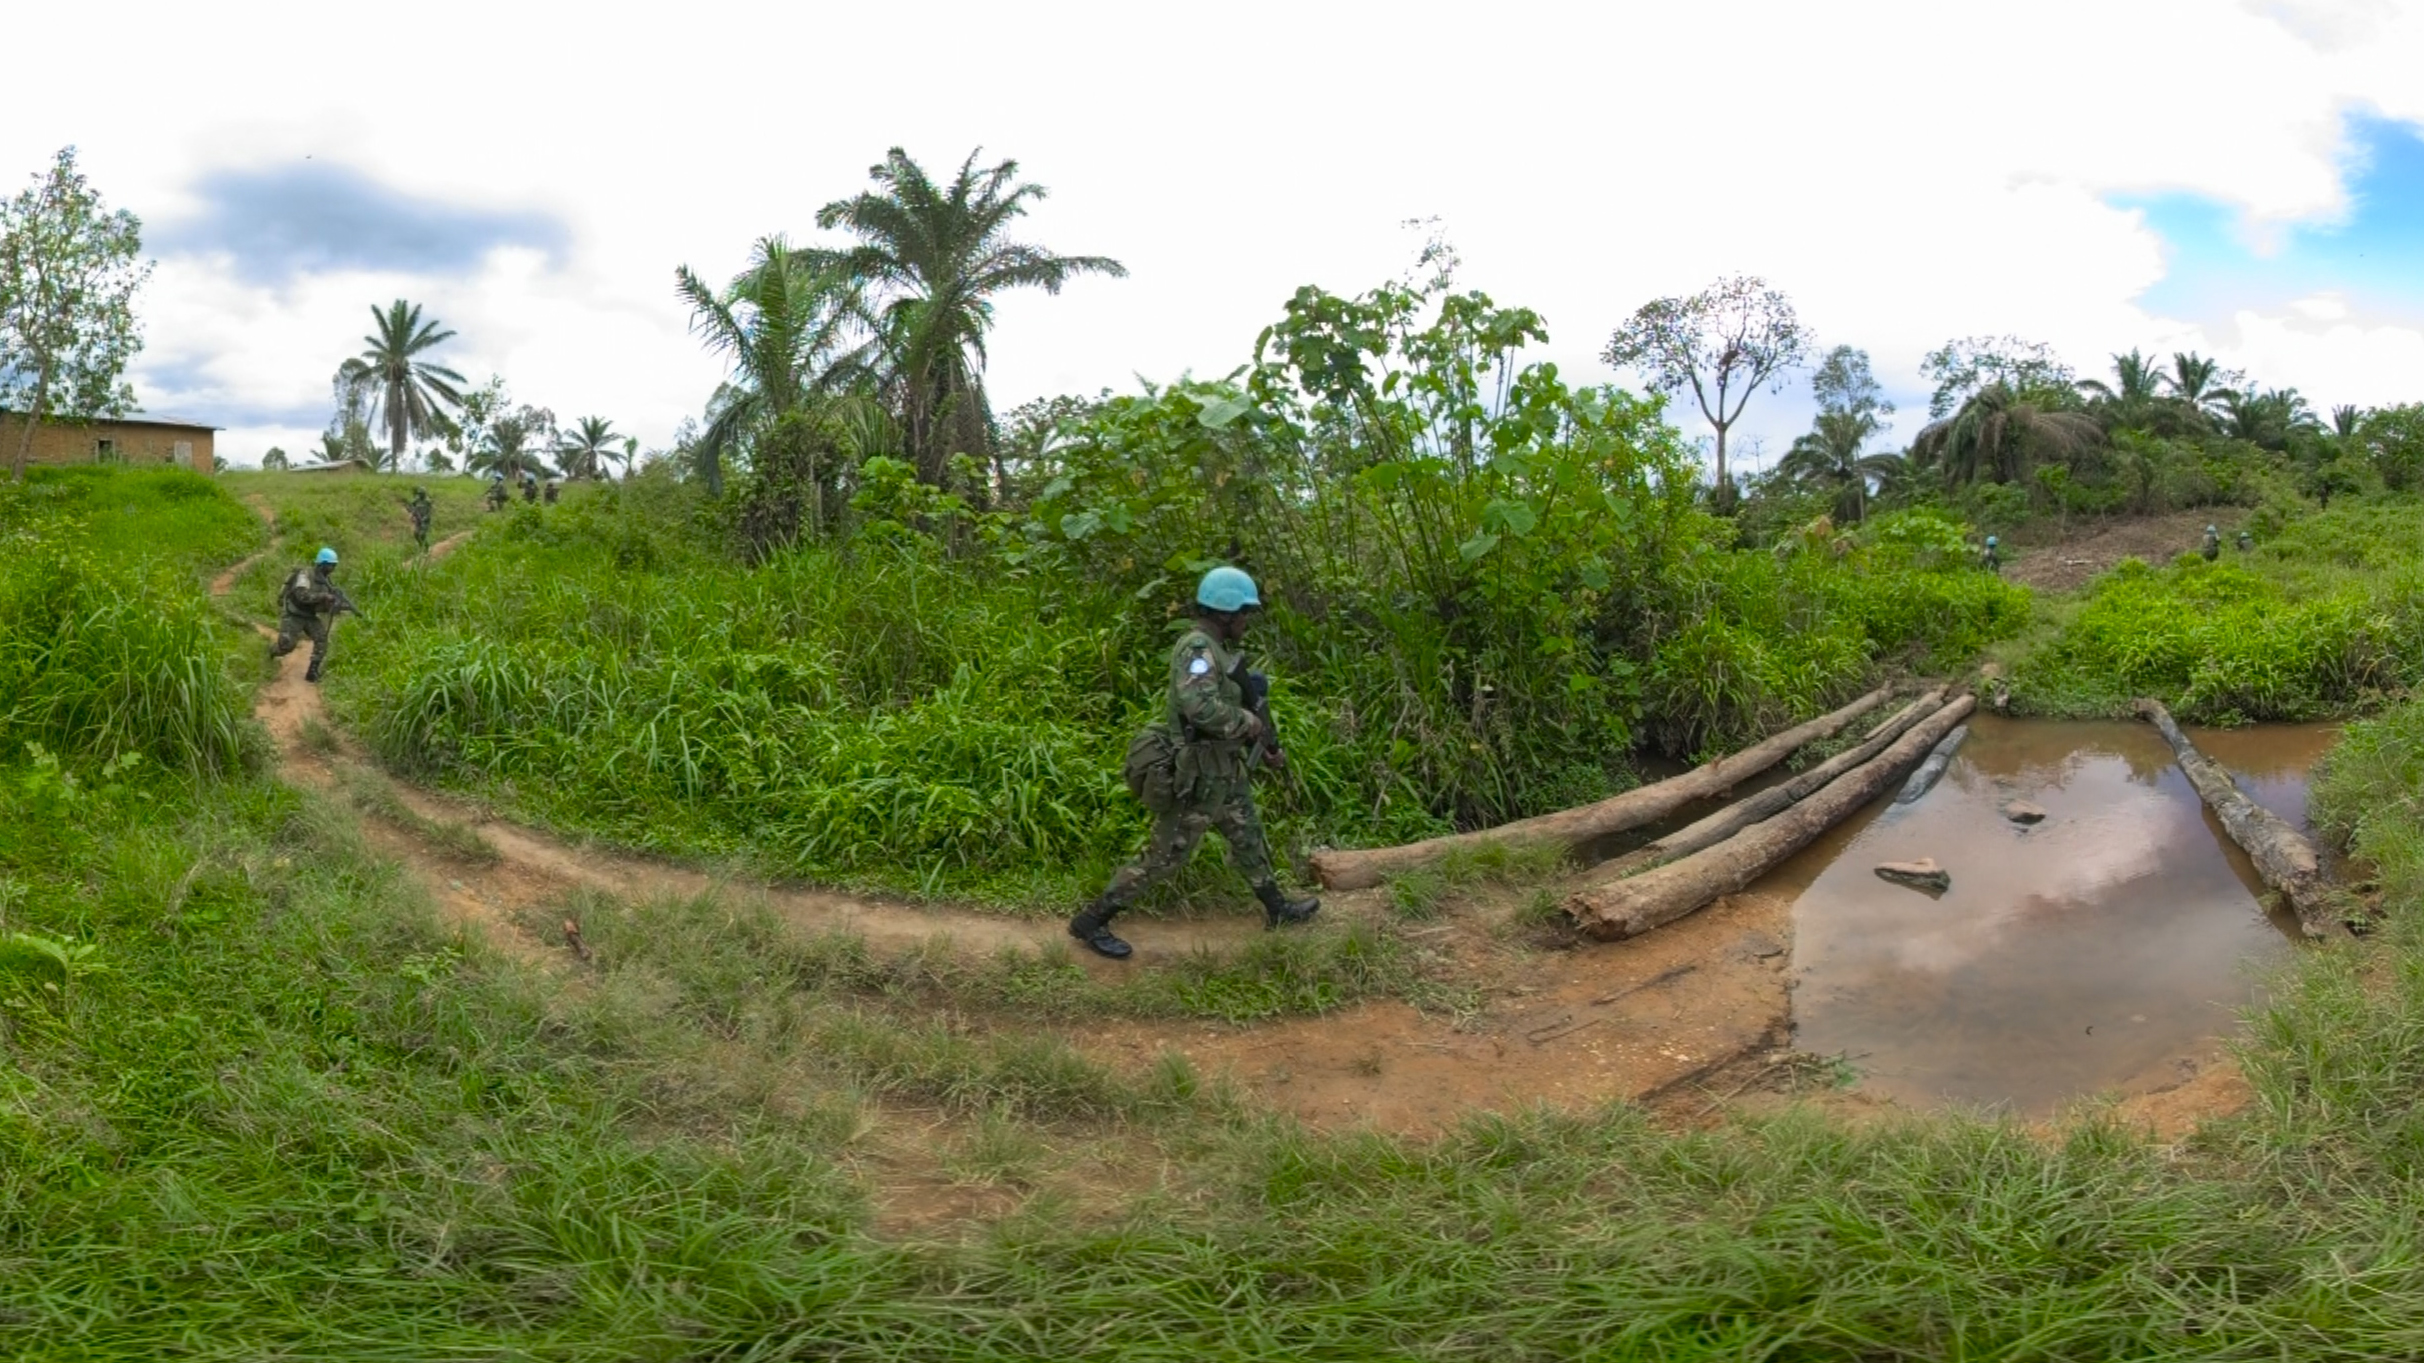 A still from the UN virtual reality film Under the Blue Helmet